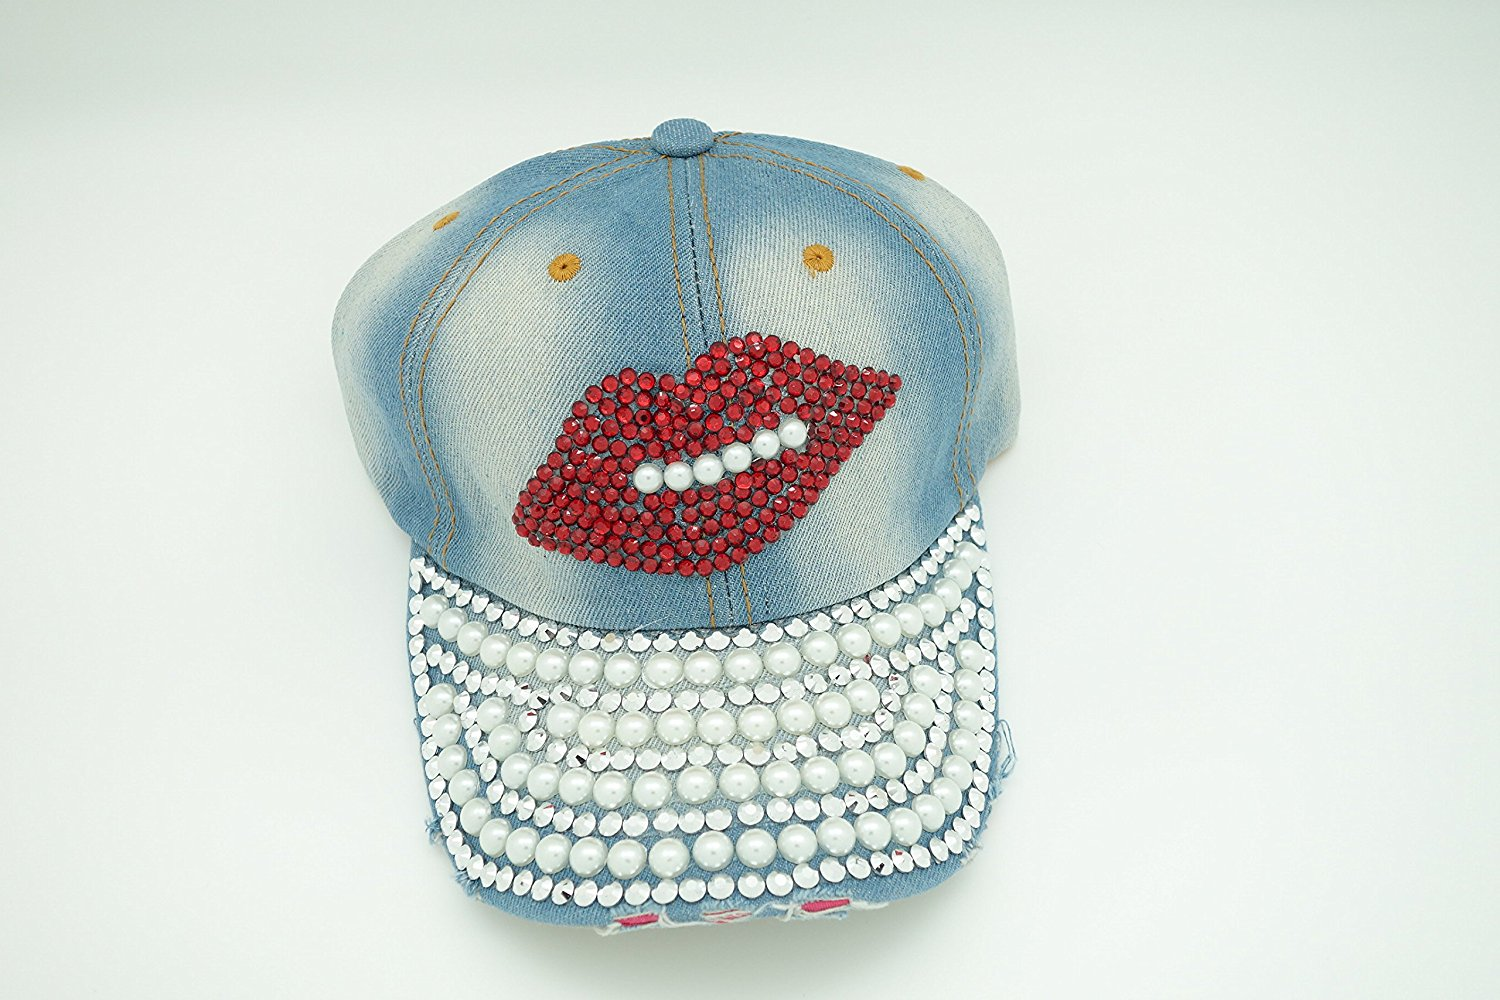 Lady Cap with Denim Jean material with Bling, Pearls, Ajustable